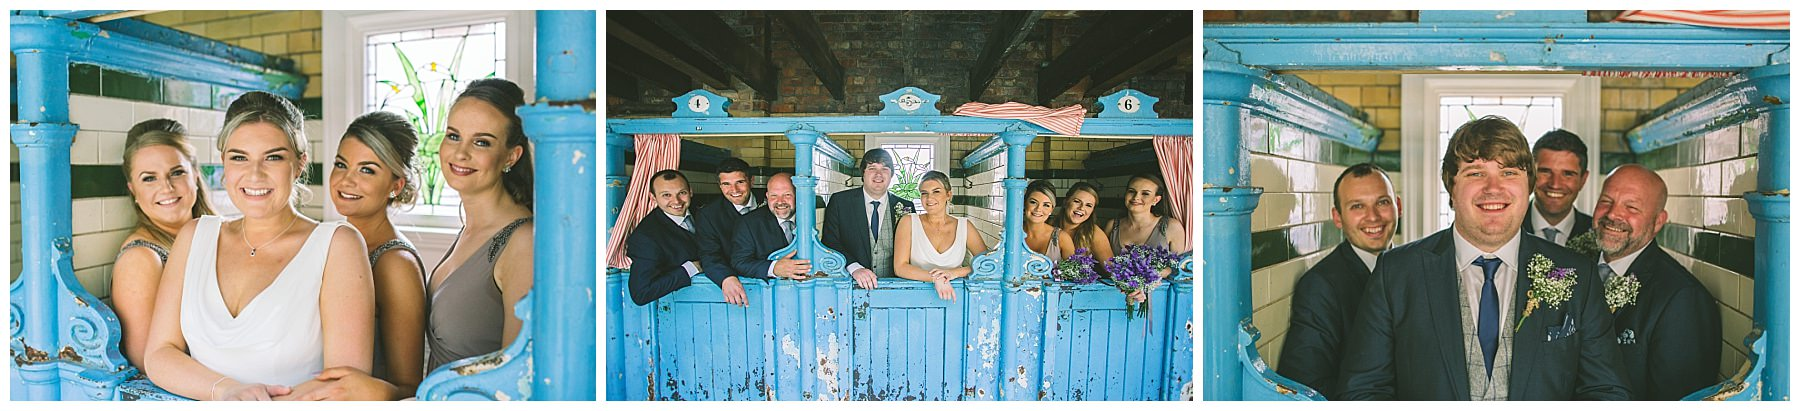 Bridesmaids and Groomsmen in the changing stalls at Victoria Baths